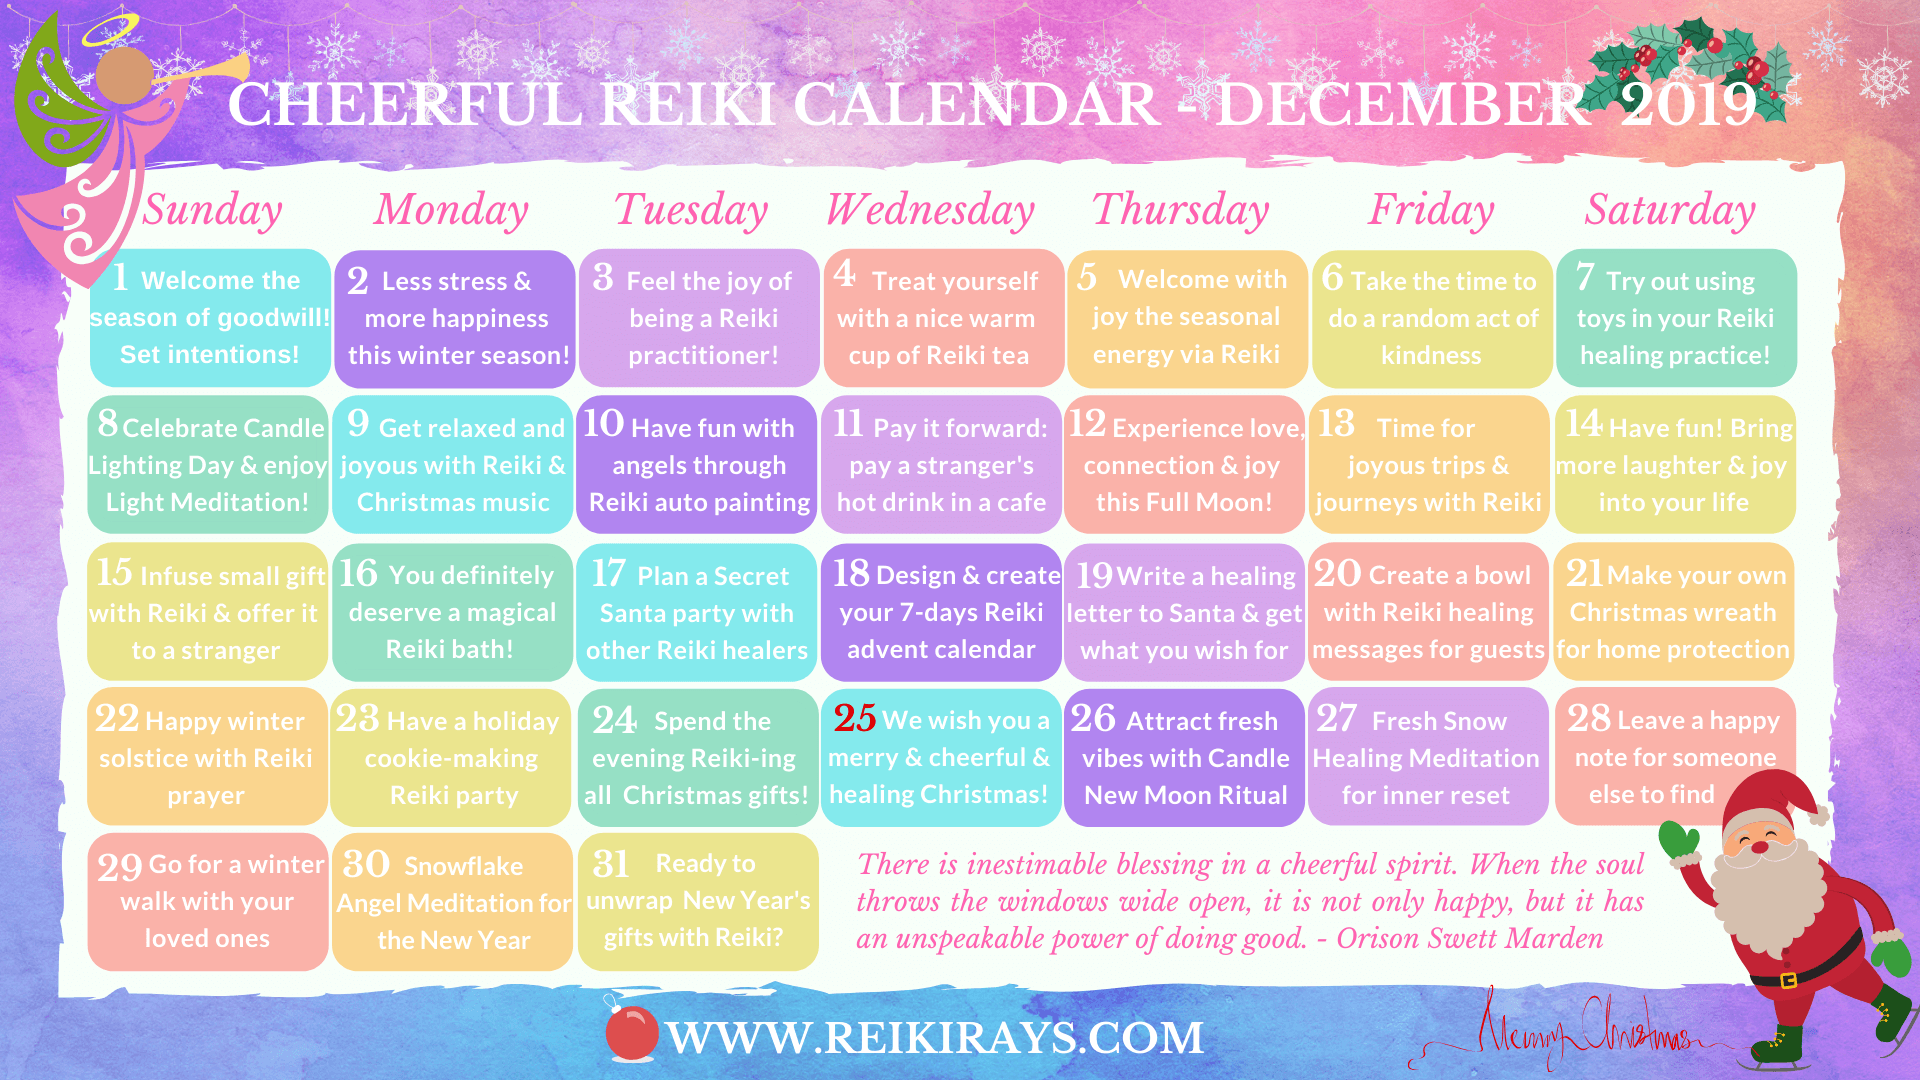 Cheerful Reiki Calendar December 2019